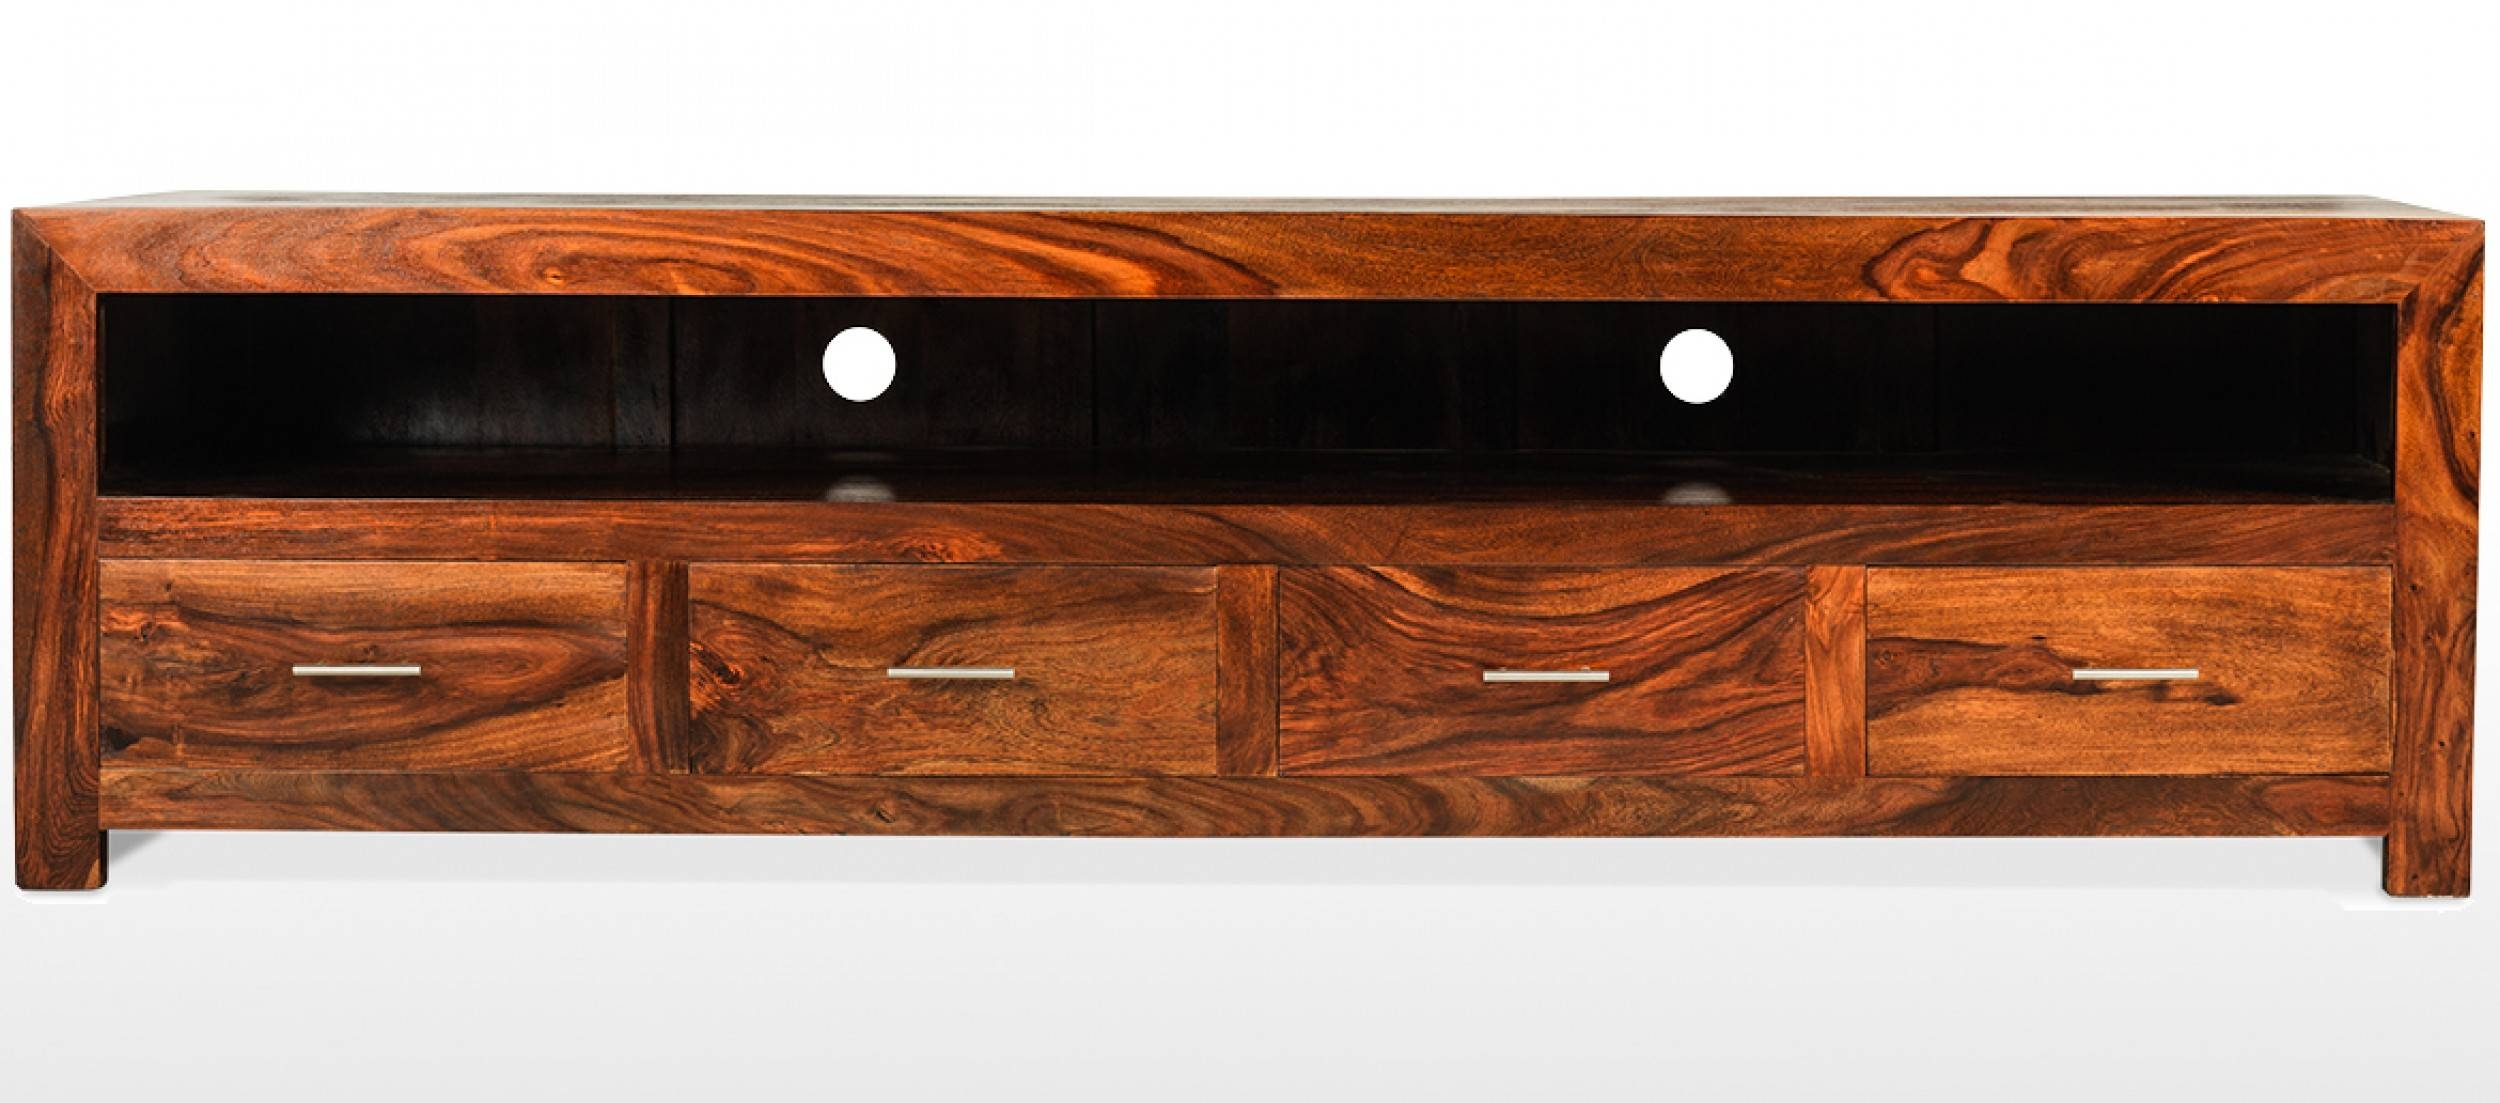 Long Media Cabinet For Your Living Room | Homesfeed in Long Tv Stands Furniture (Image 5 of 15)